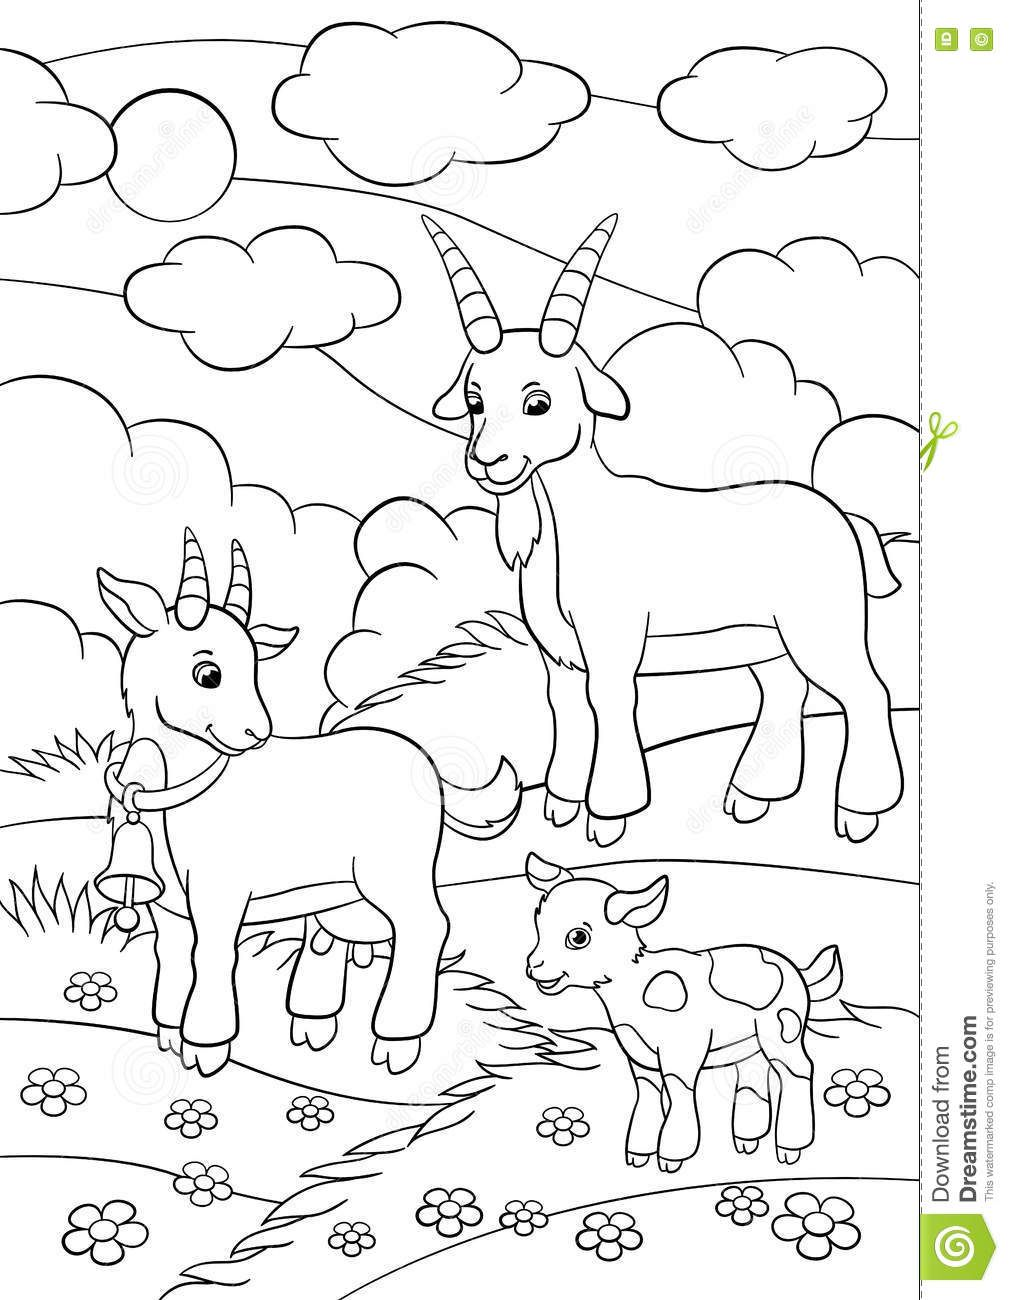 Coloring Pages Farm Animals Goat Family Stock Vector Illustration Of Contour Educat Farm Animal Coloring Pages Farm Coloring Pages Zoo Animal Coloring Pages